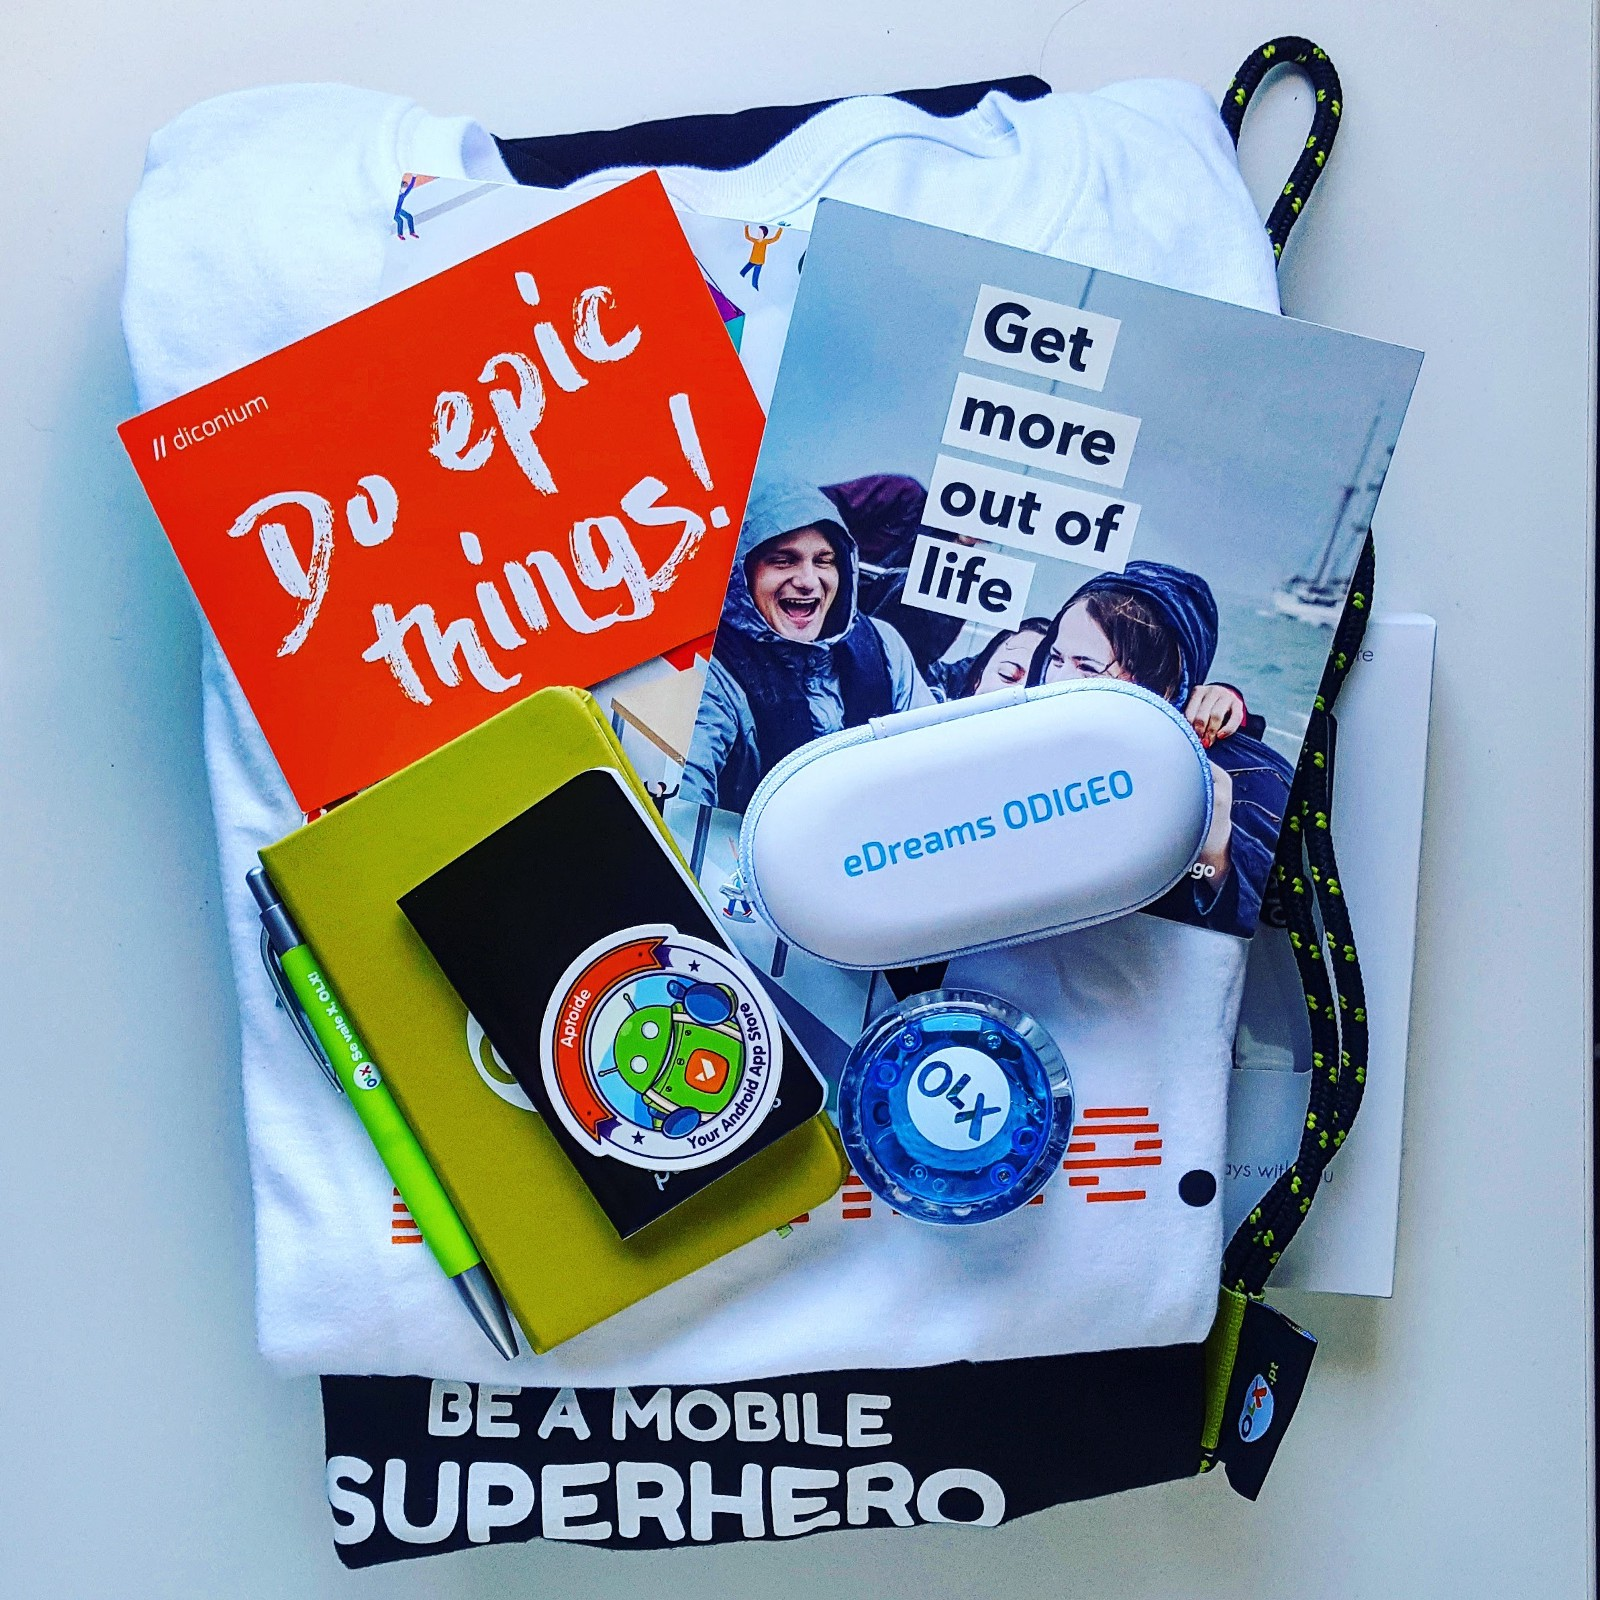 /heads-without-hoodies-and-a-bag-full-of-goodies-my-review-of-attending-a-tech-careers-festival-99650fb707f8 feature image